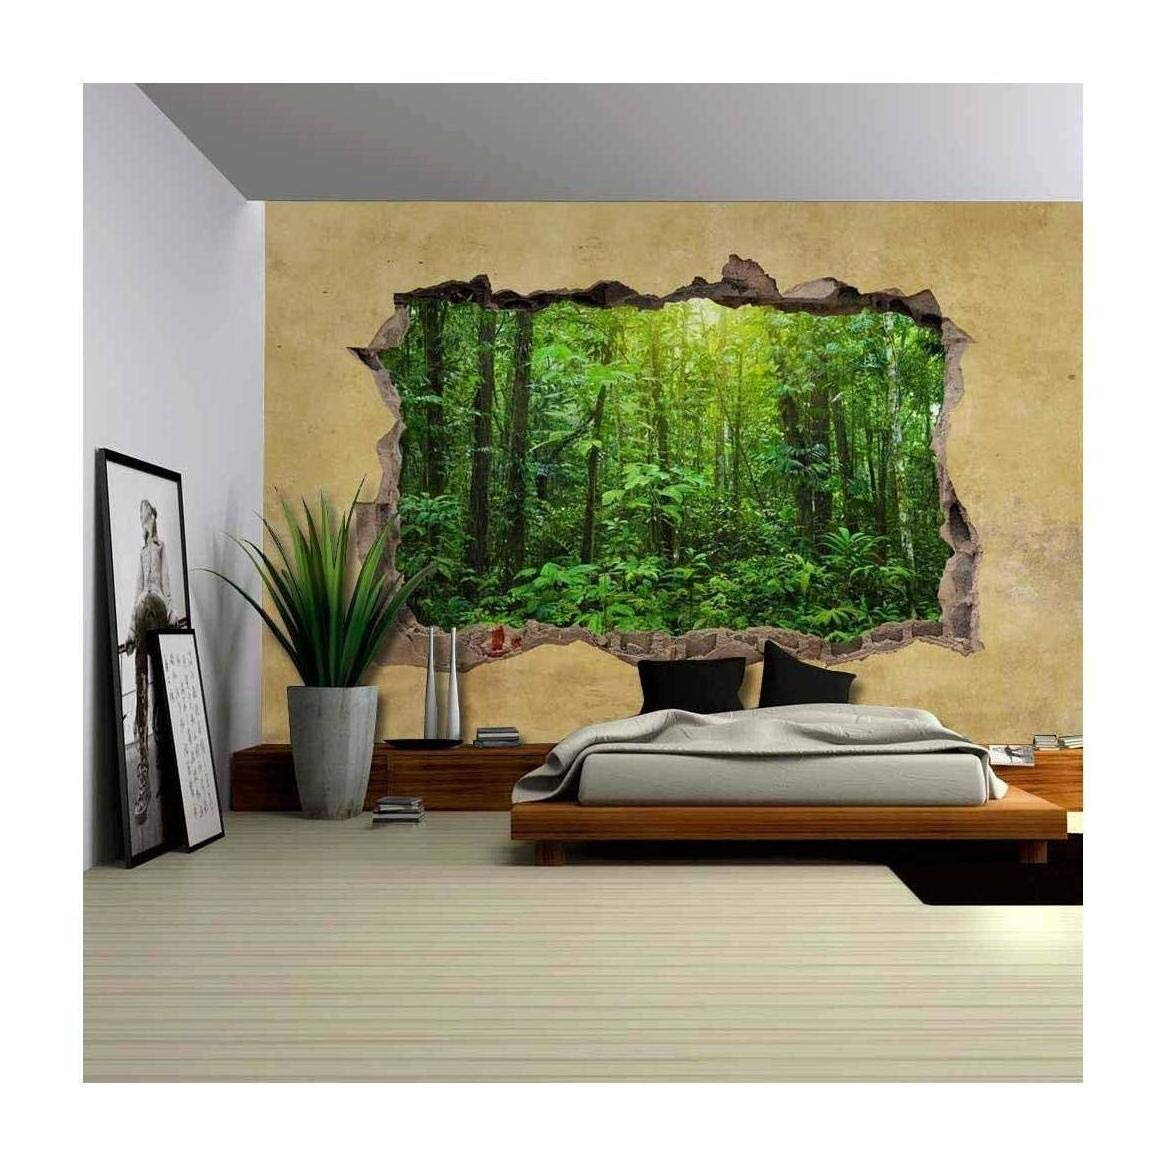 wall26 Tropical Rain Forest Viewed through a Broken Wall - Large Wall Mural, Removable Peel and Stick Wallpaper, Home Decor - 66x96 inches